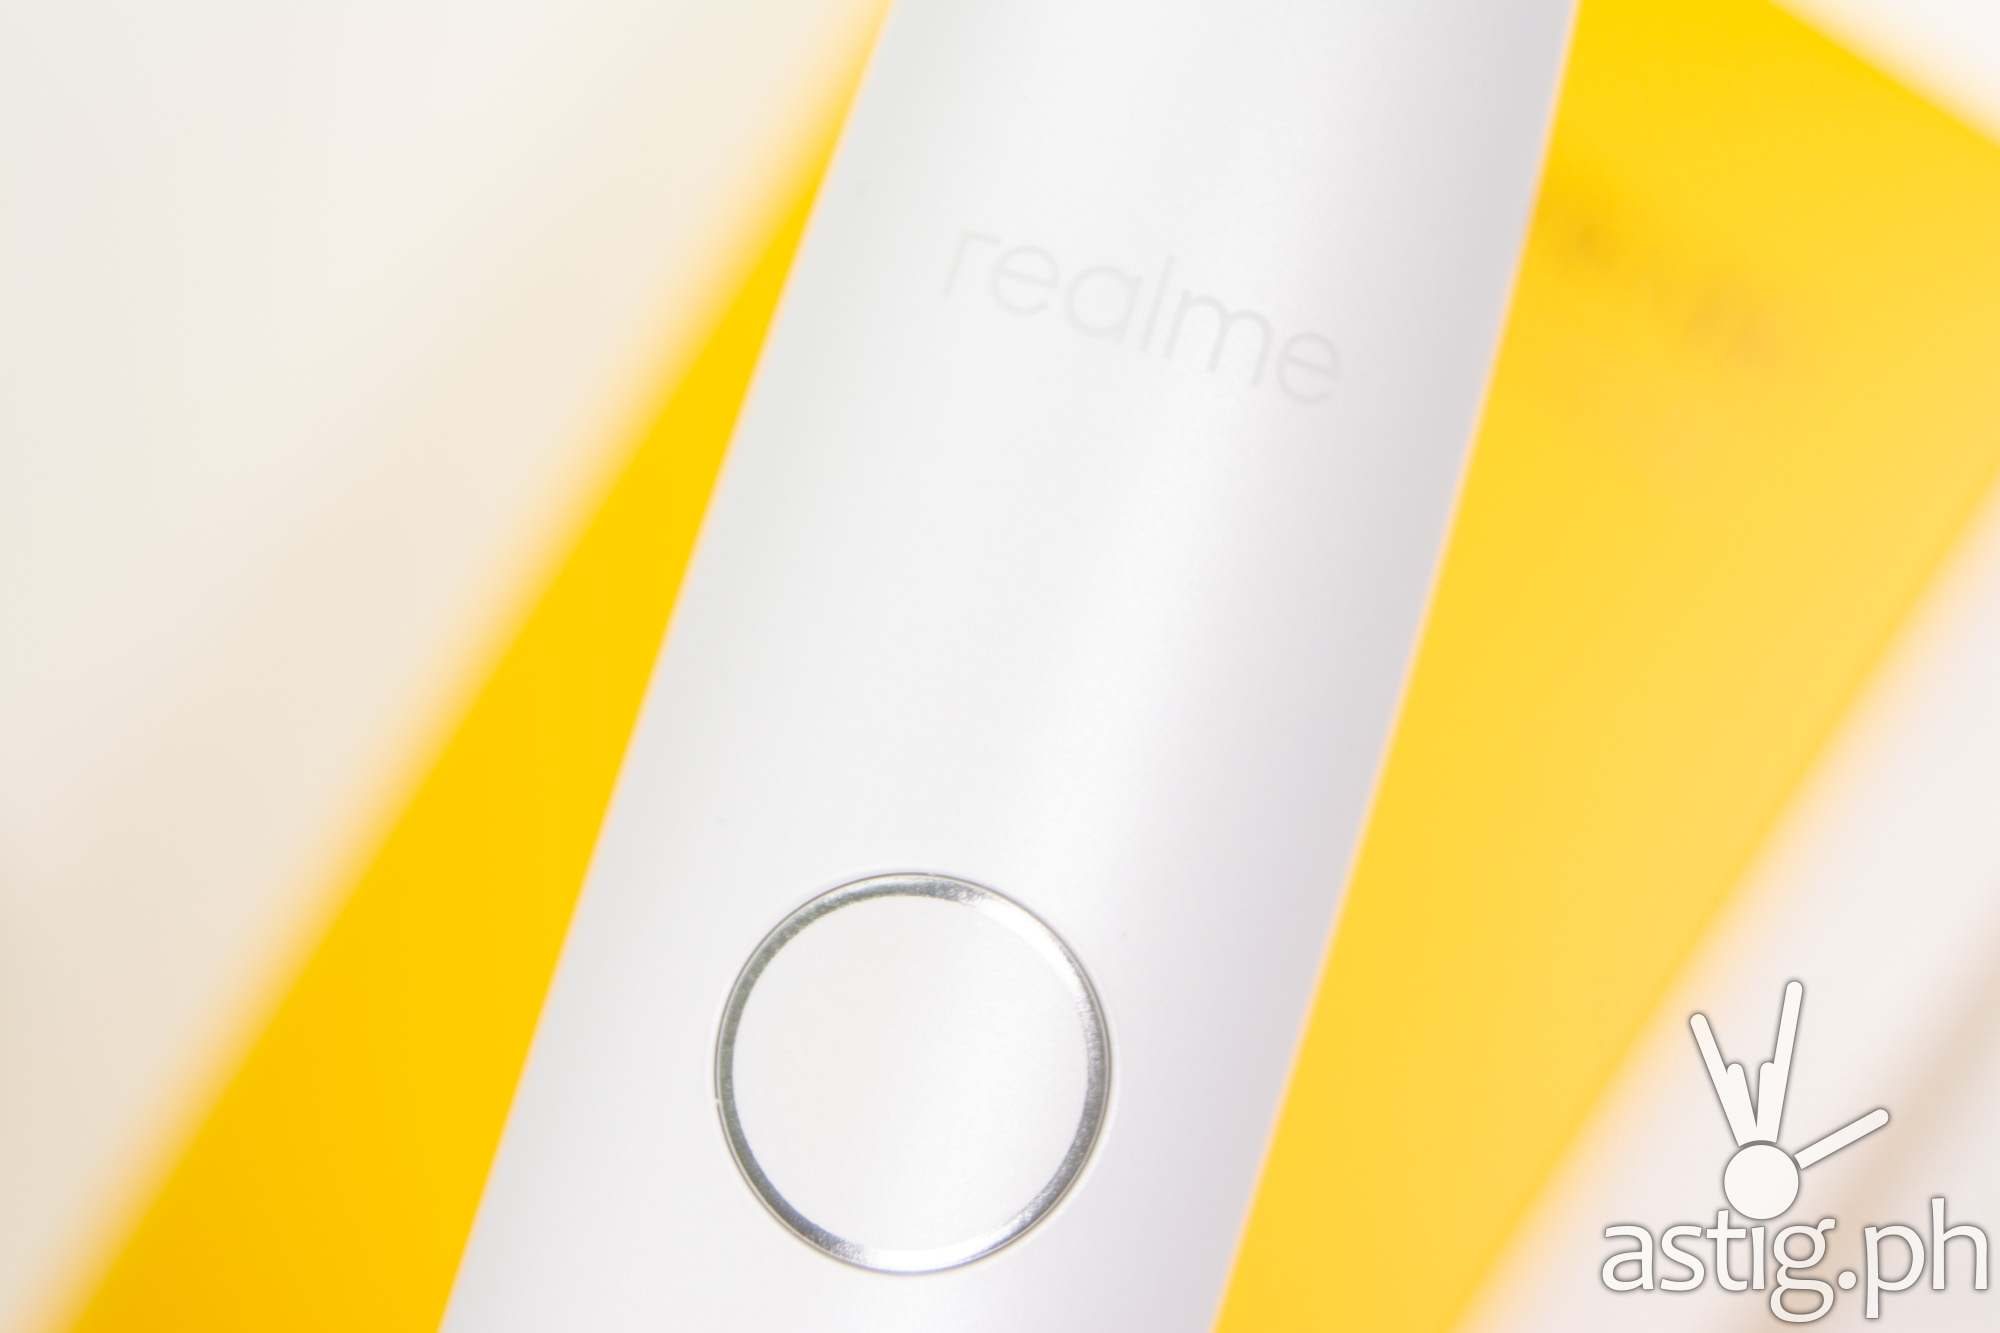 Power button closeup - realme M1 Sonic Electric Toothbrush (Philippines)